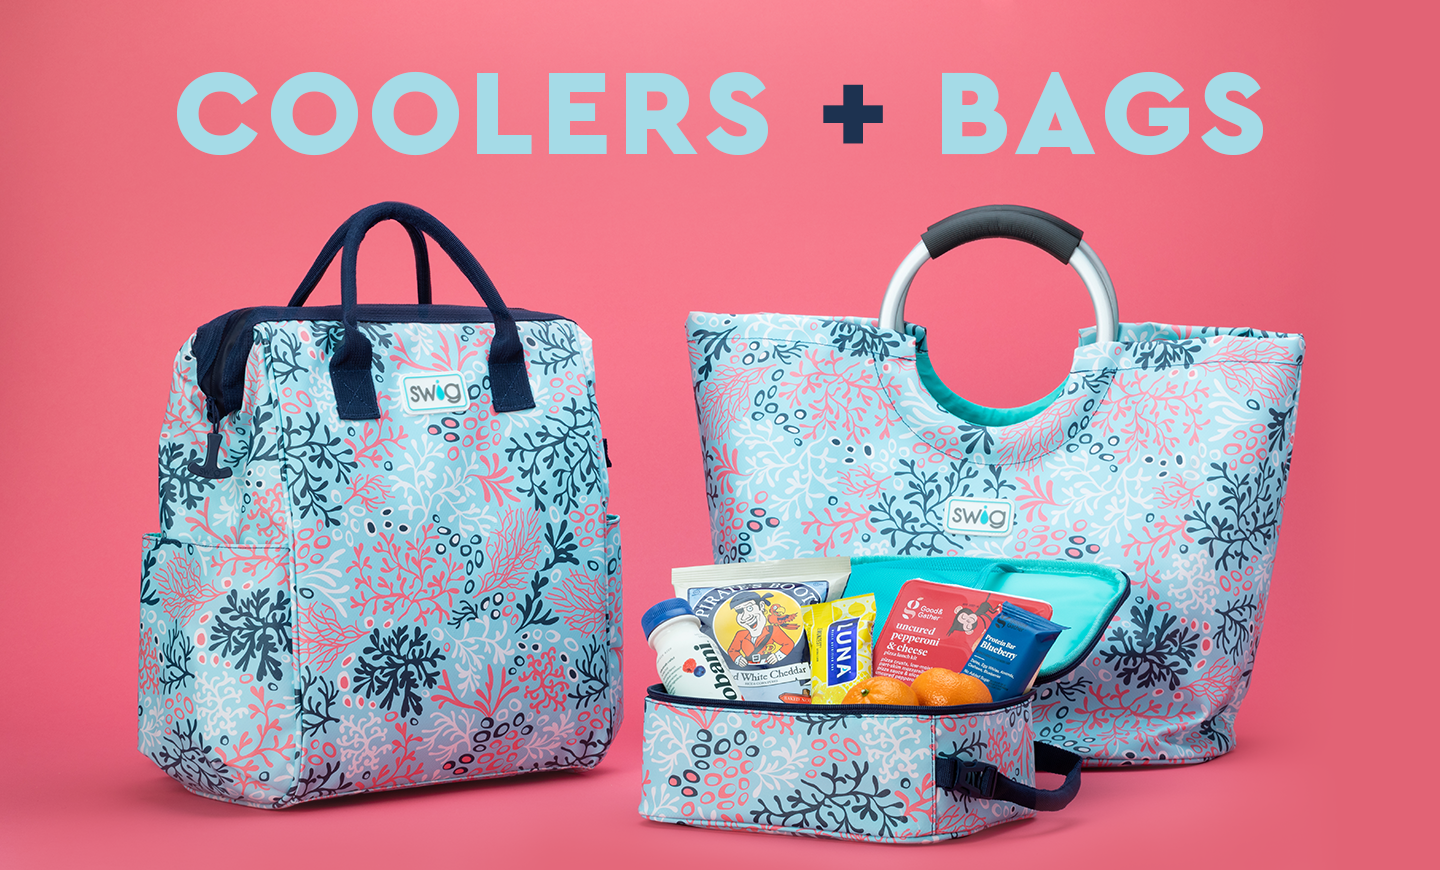 Coolers + Bags